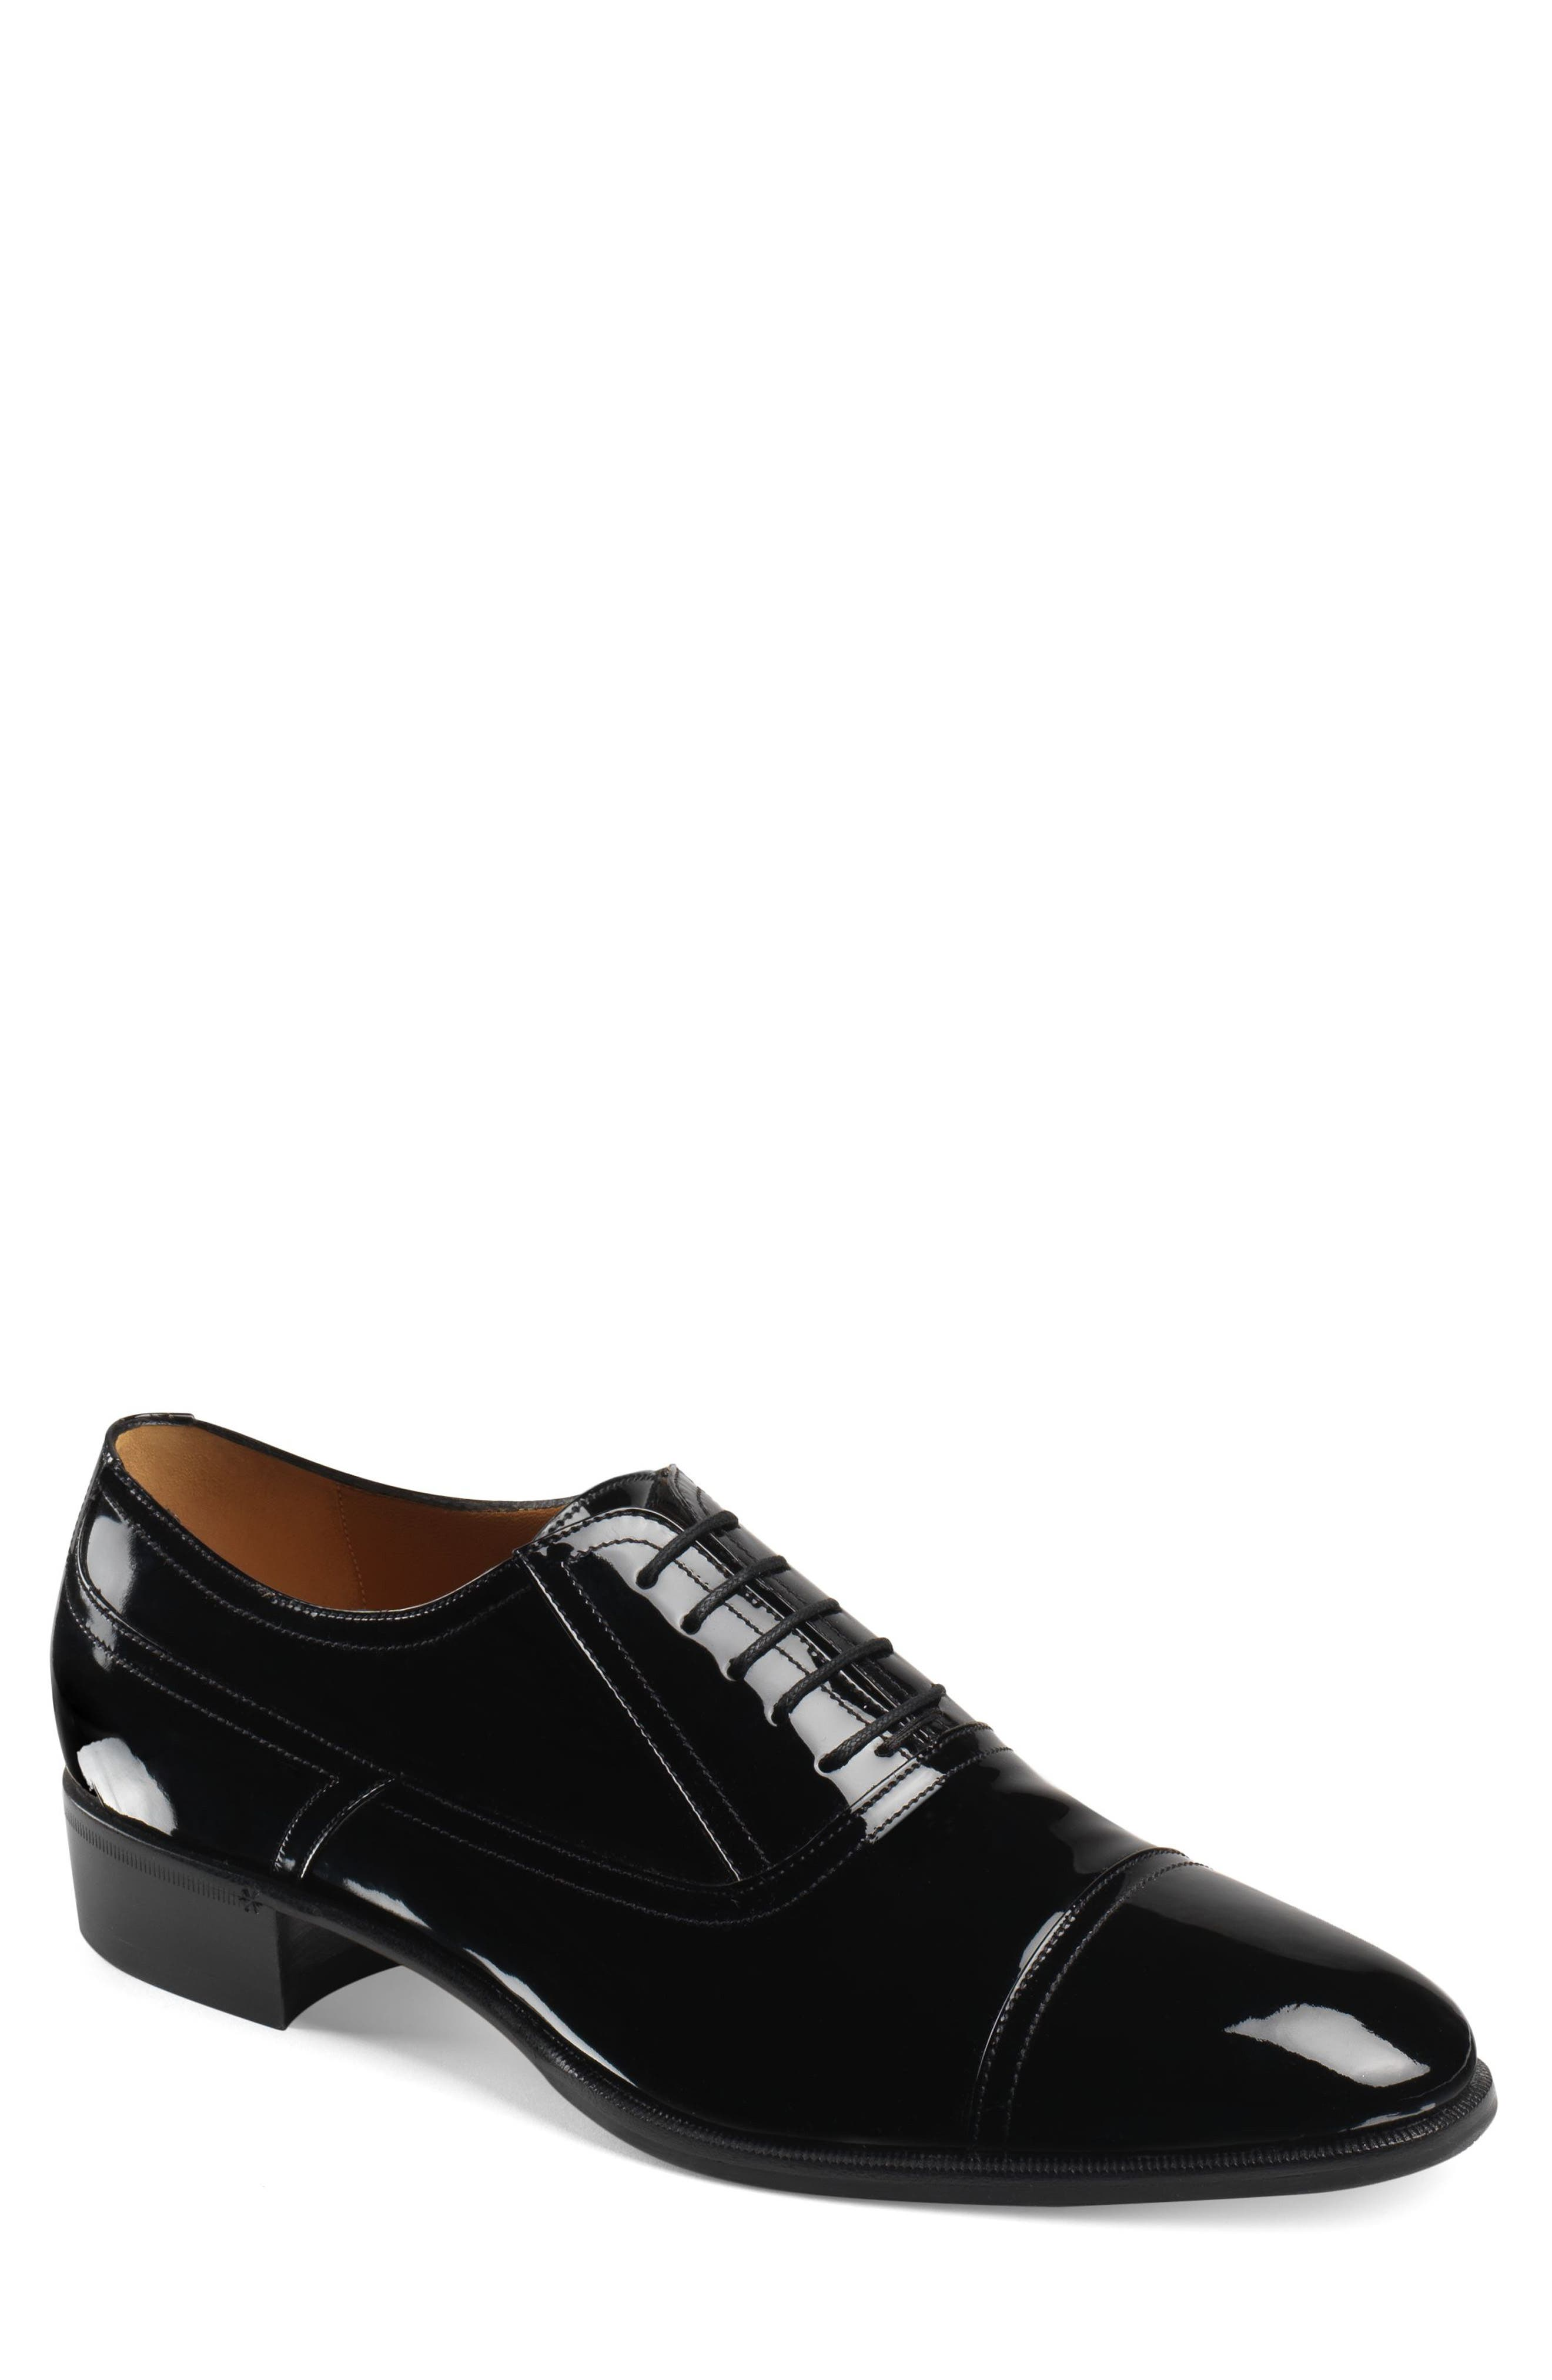 Men'S Patent Leather Lace-Up Shoes in Nero/Nero